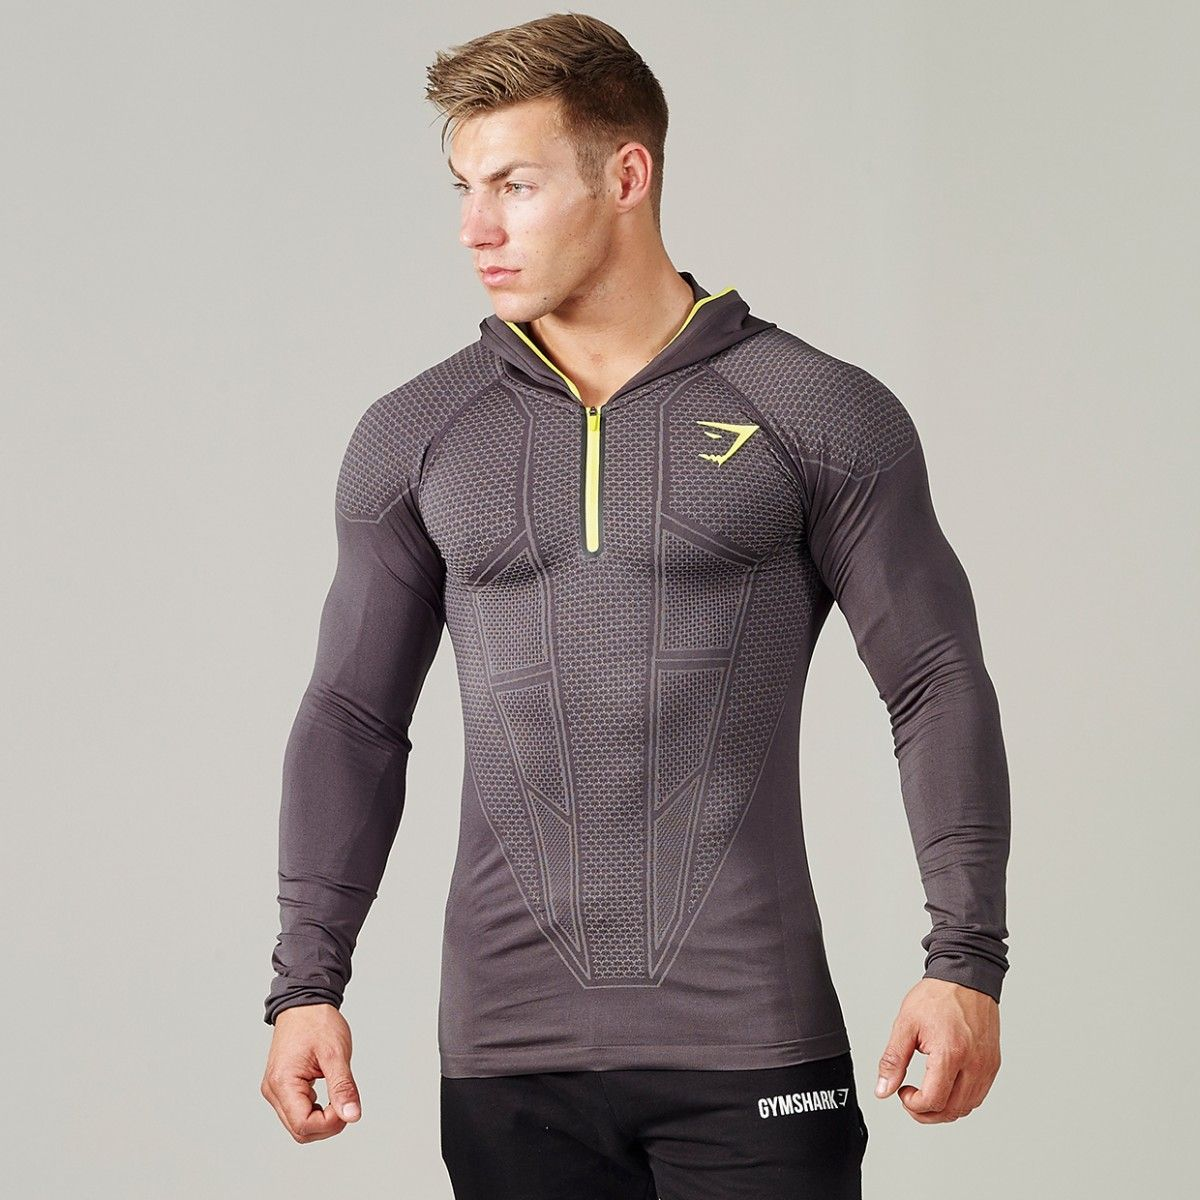 best sale where can i buy structural disablities Gymshark Onyx Seamless Hooded Top - Charcoal - Hoodies ...